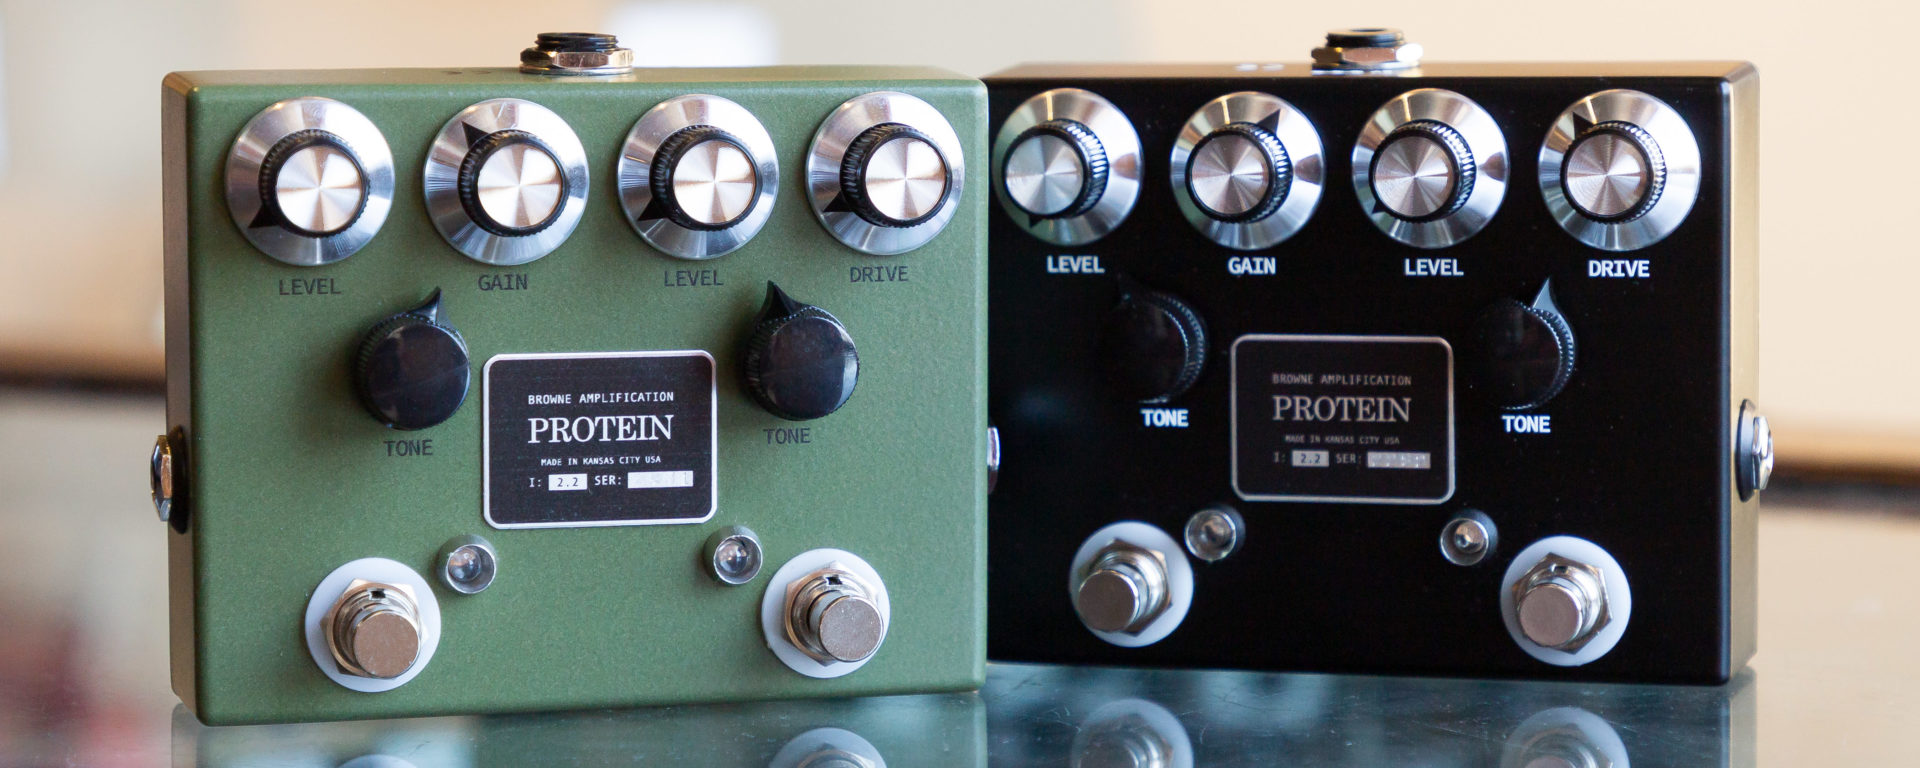 Browne Amplification Protein Overdrive